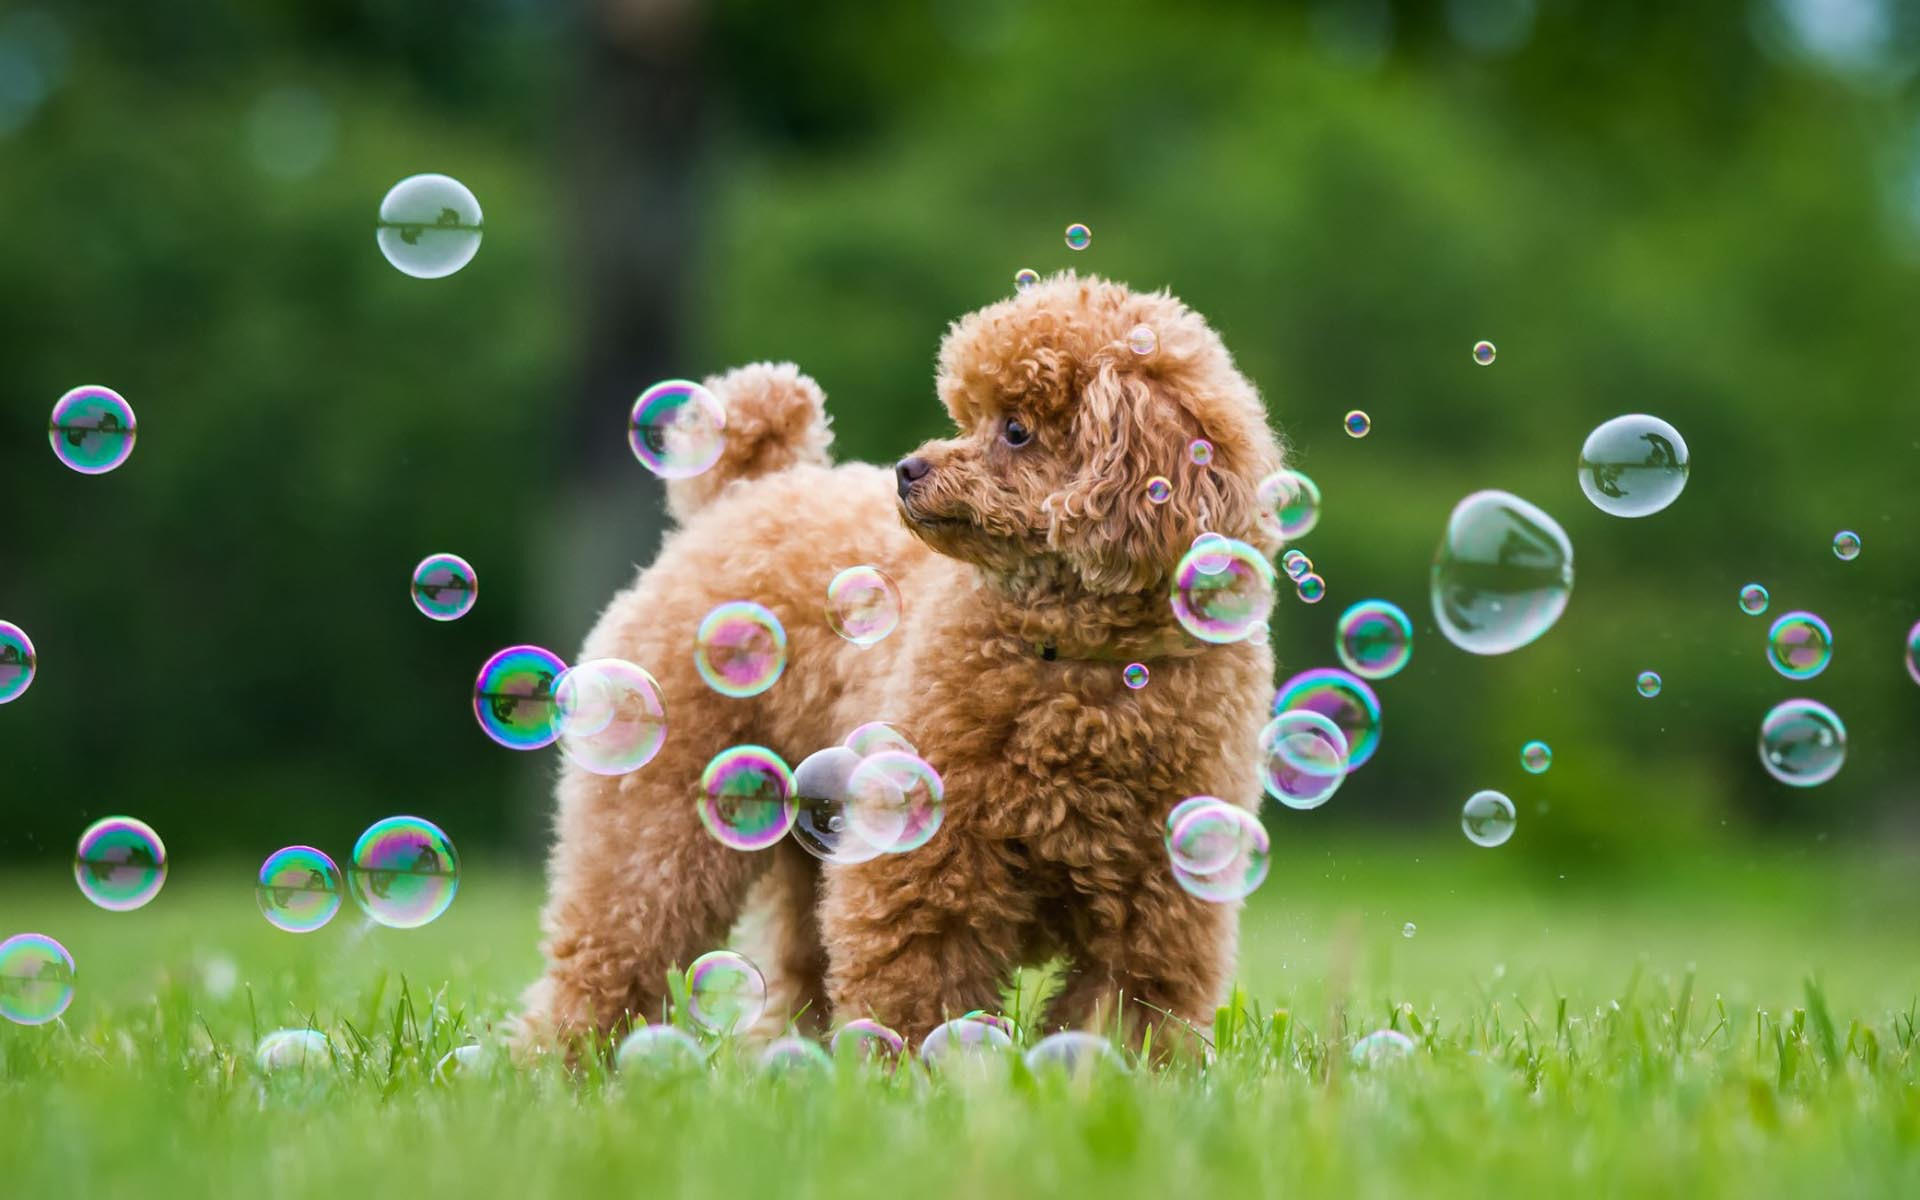 Poodle Dog Wallpaper 49987